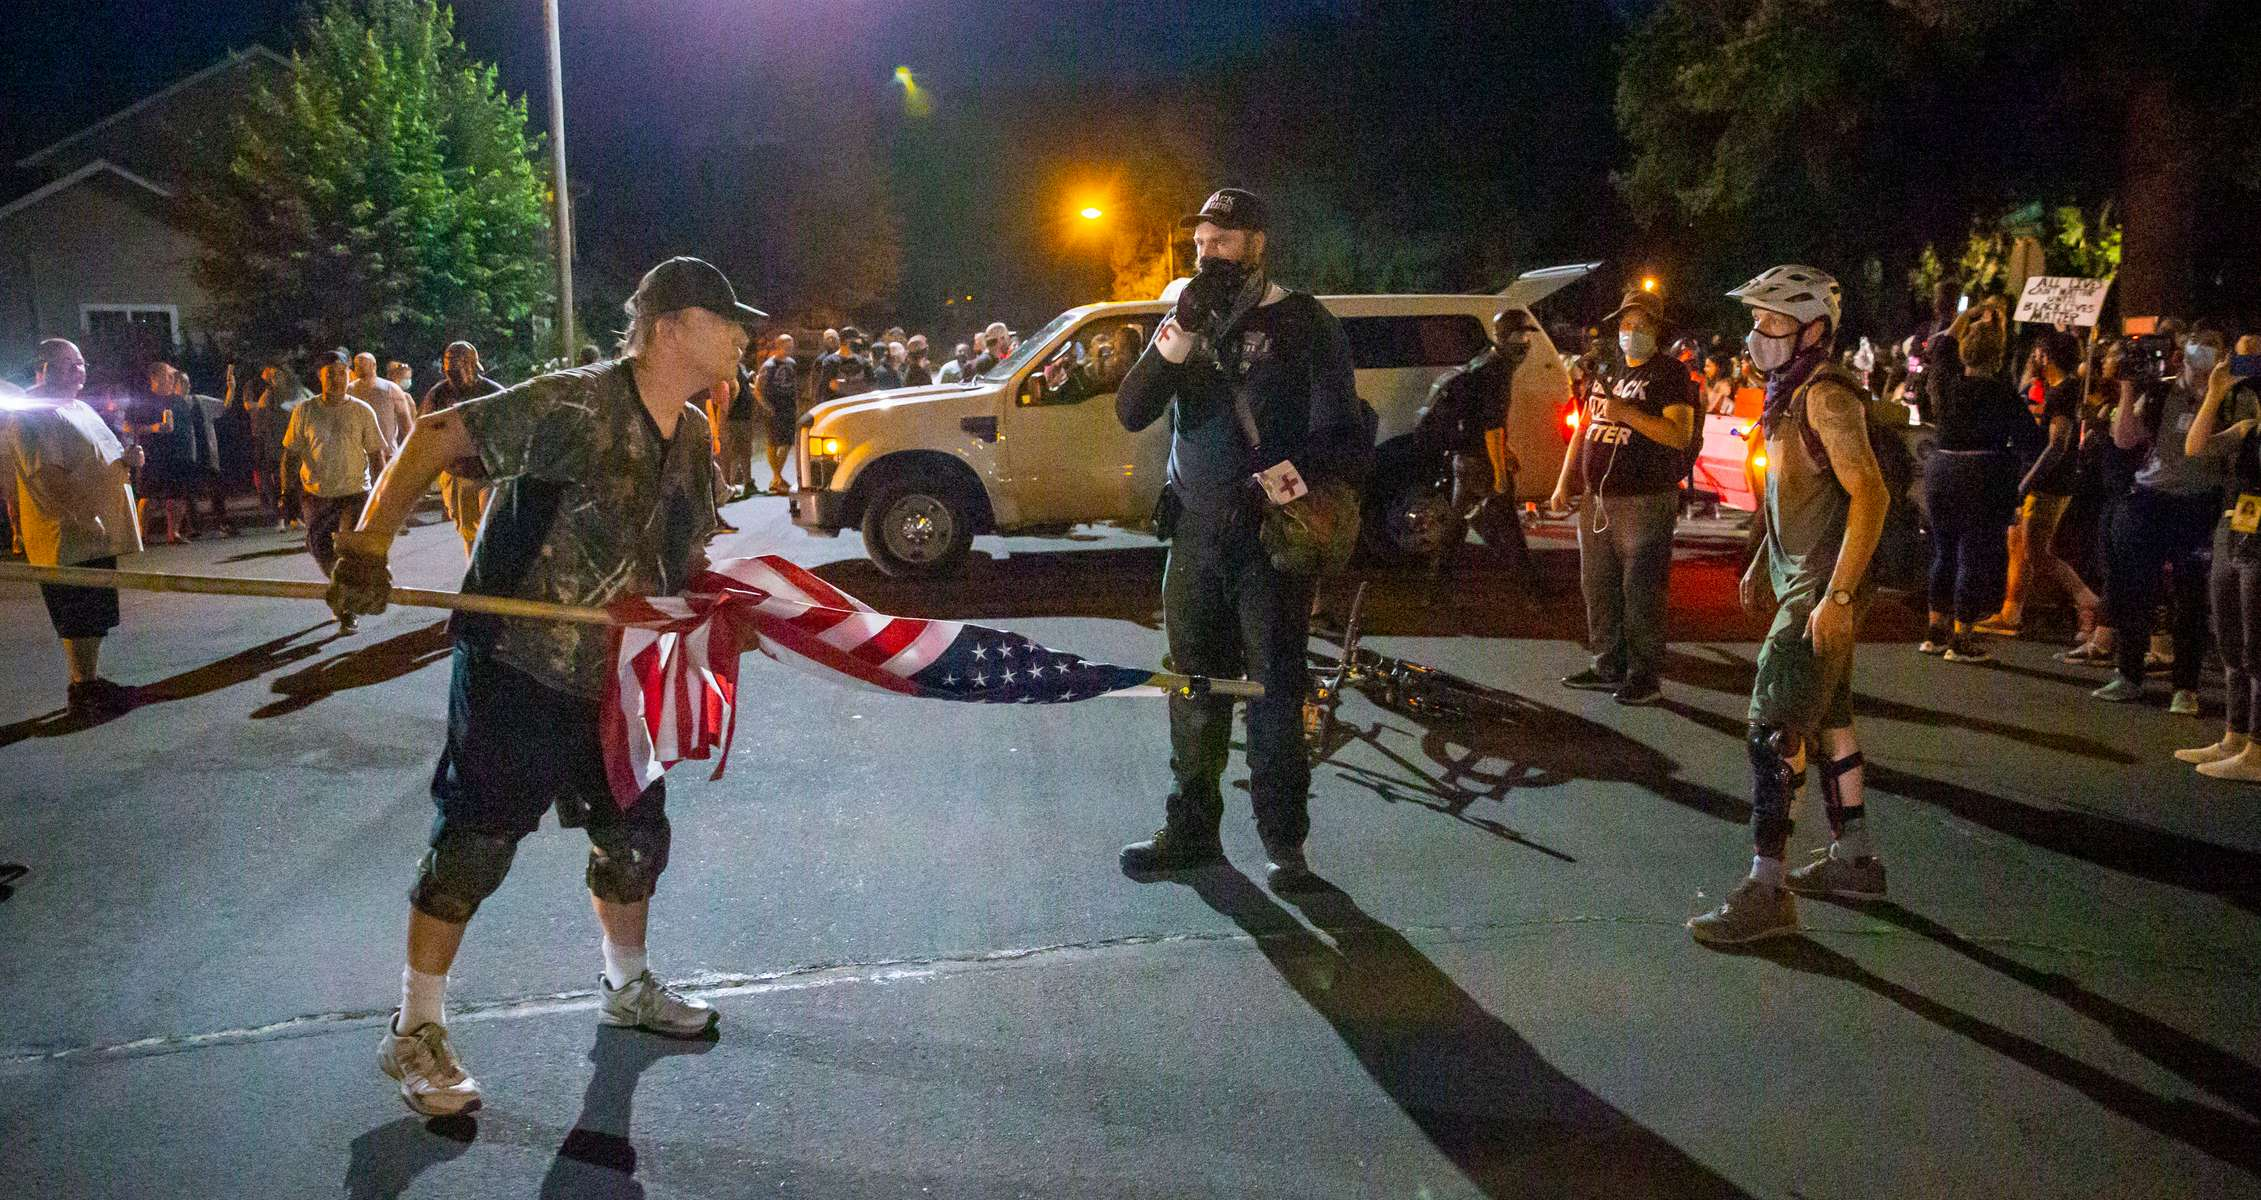 A counter-protester and a Black Unity protester square off as Black Unity protesters left the Springfield, Ore., neighborhood after marching through the streets in Springfield, Ore. July 29, 2020.